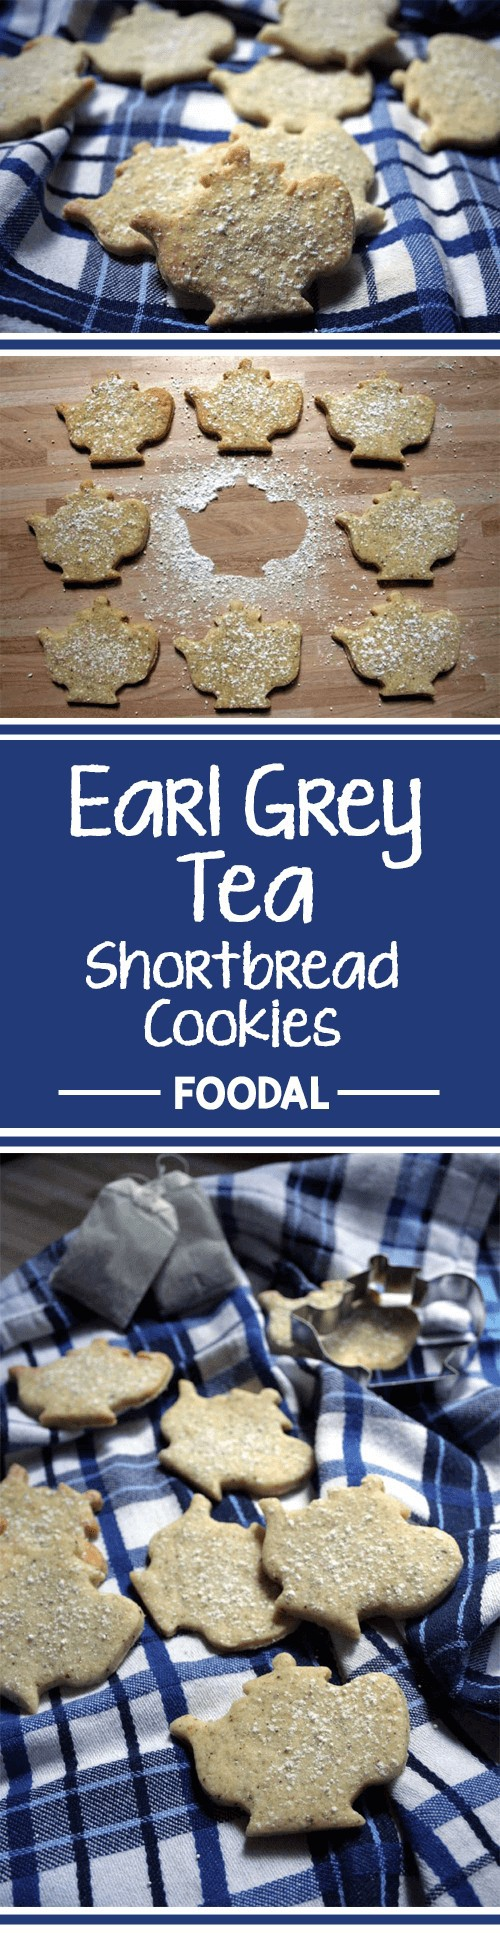 How about a fresh cup of tea? And some crunchy cookies? This time, you can have all at once with this delicious shortbread recipe. It comes with a hint of Earl Grey bergamot flavor and a buttery taste. Read on for some gorgeous little tea time treats. https://foodal.com/recipes/desserts/earl-grey-tea-flavored-shortbread-cookies/